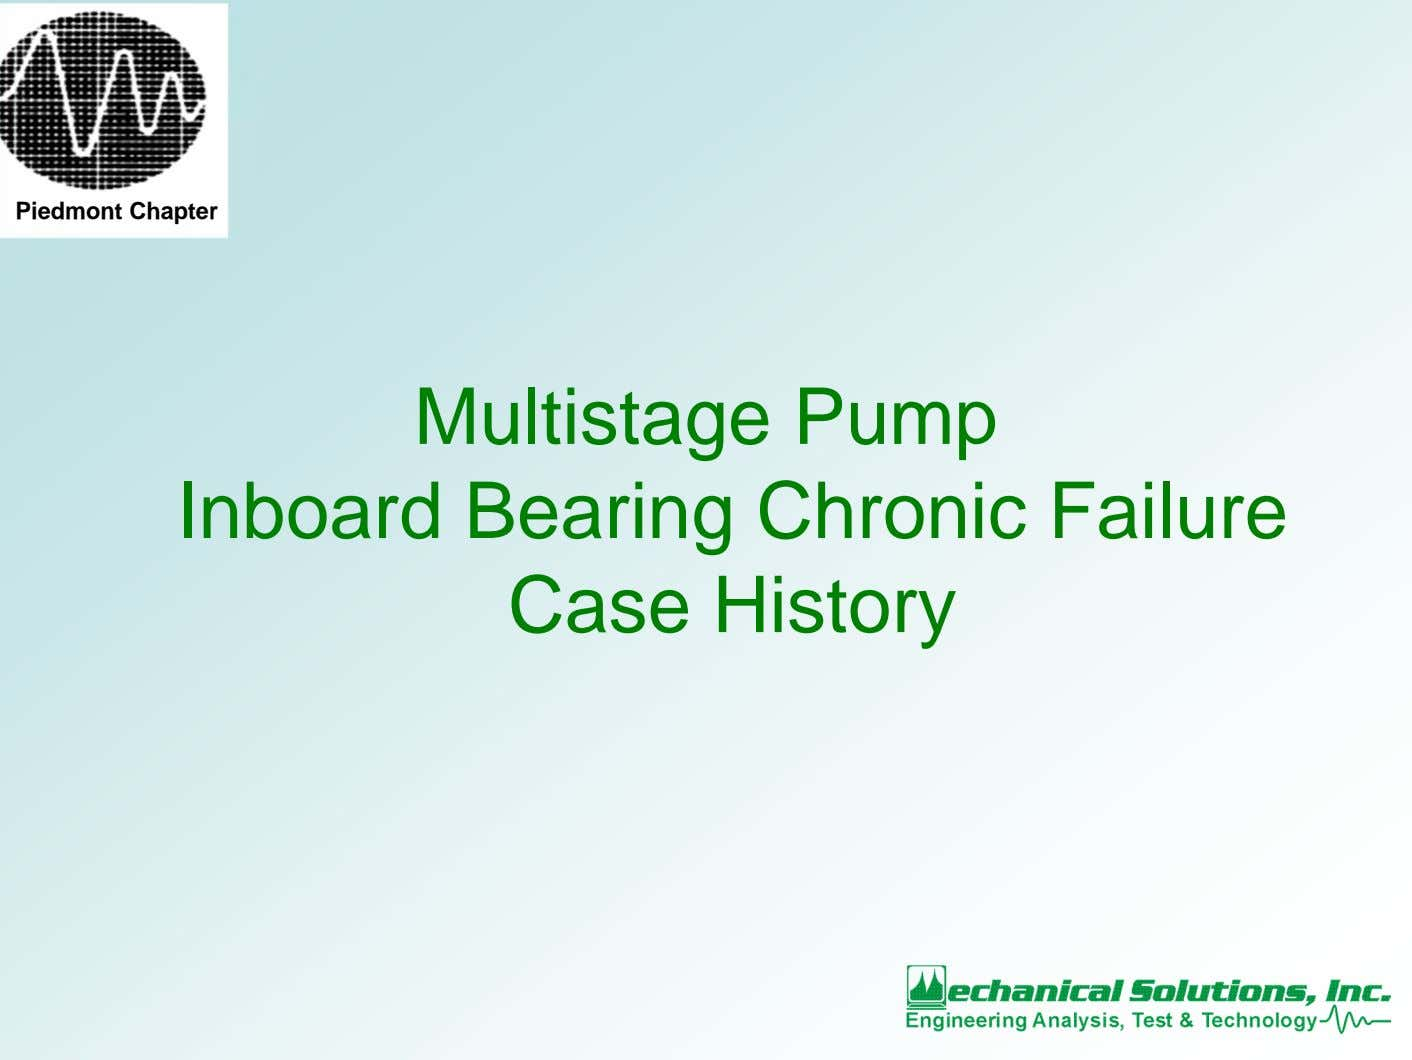 Piedmont Chapter Multistage Pump Inboard Bearing Chronic Failure Case History